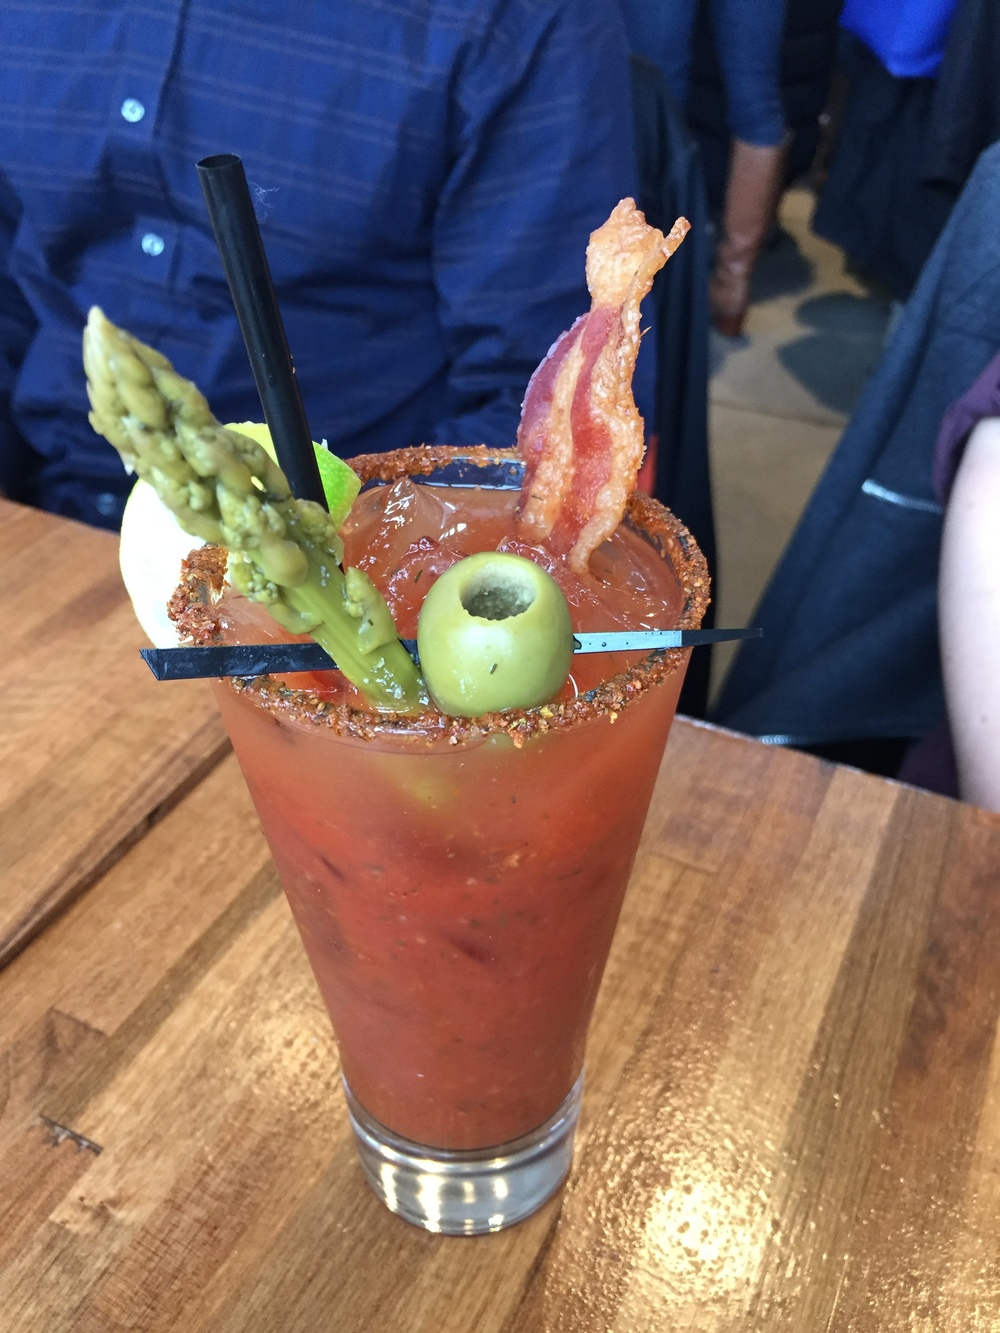 That olive is a little ball of evil, but I can get behind a drink garnished with bacon and pickled asparagus. Noms-a-fucking-hoy.